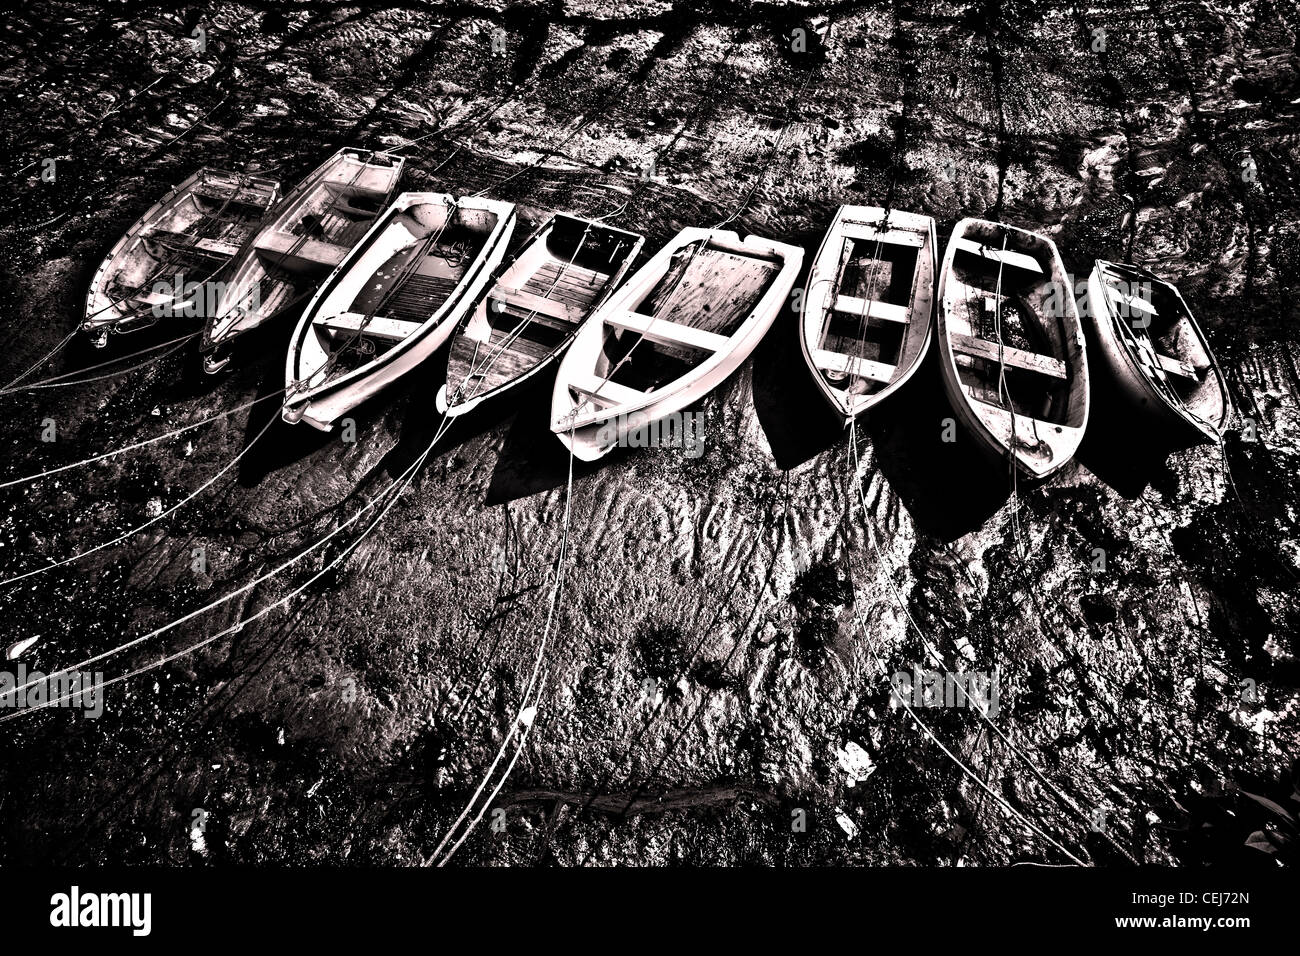 A colour and black and white image of rowing boats tied up at low tide. - Stock Image